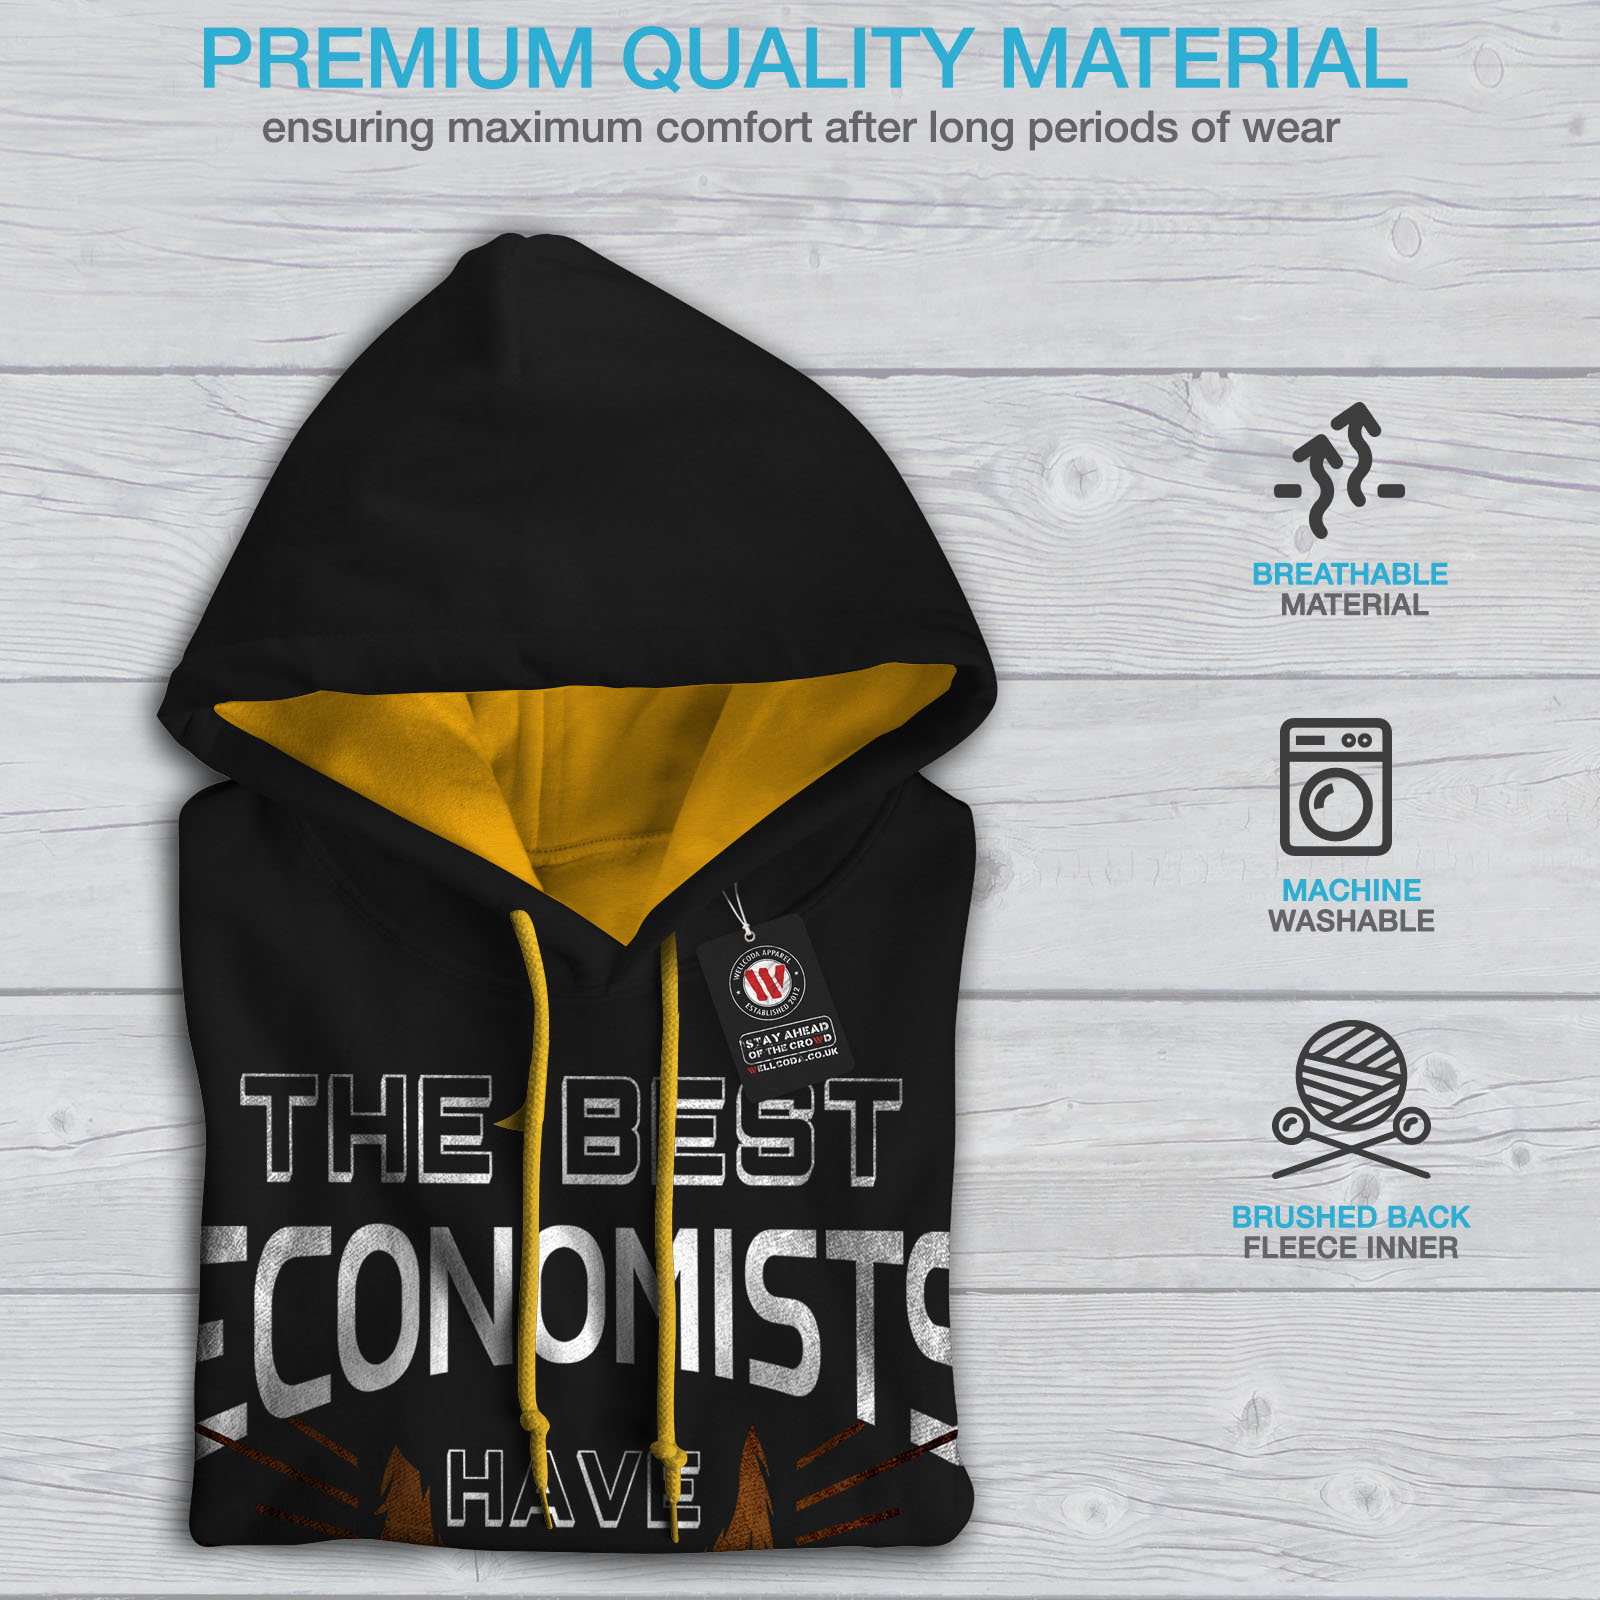 Casual The Beard Economist Hoodie Contrast Best Mens Wellcoda Jumper Hood gold Black x0nq7gTwqY